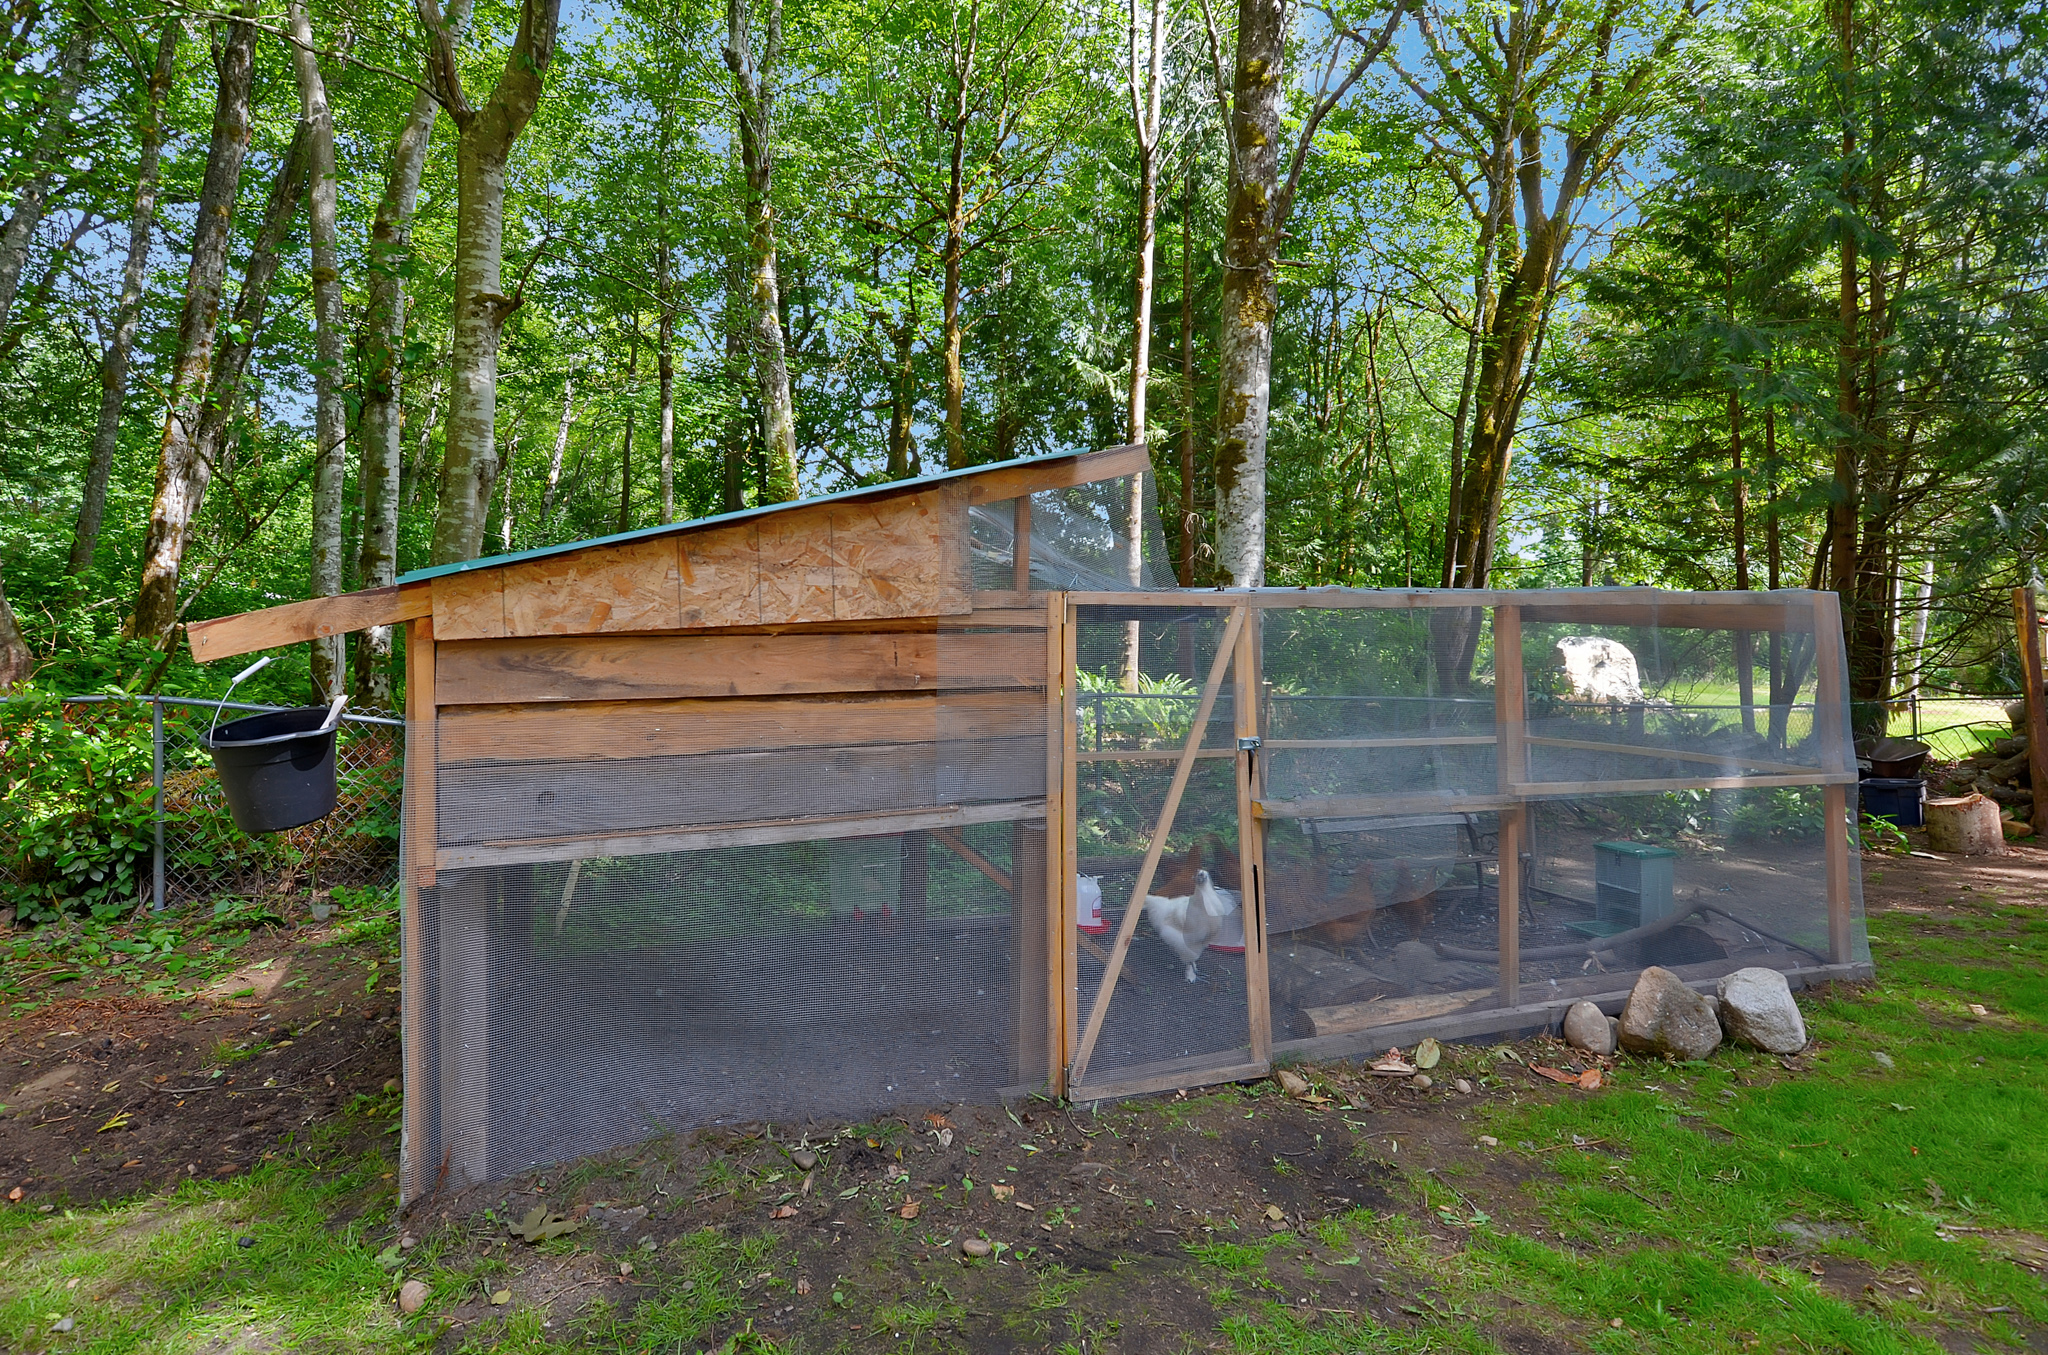 There's even room for a chicken coop back here! If you have pets, there's definitely space for them on this 0.75 acre lot.